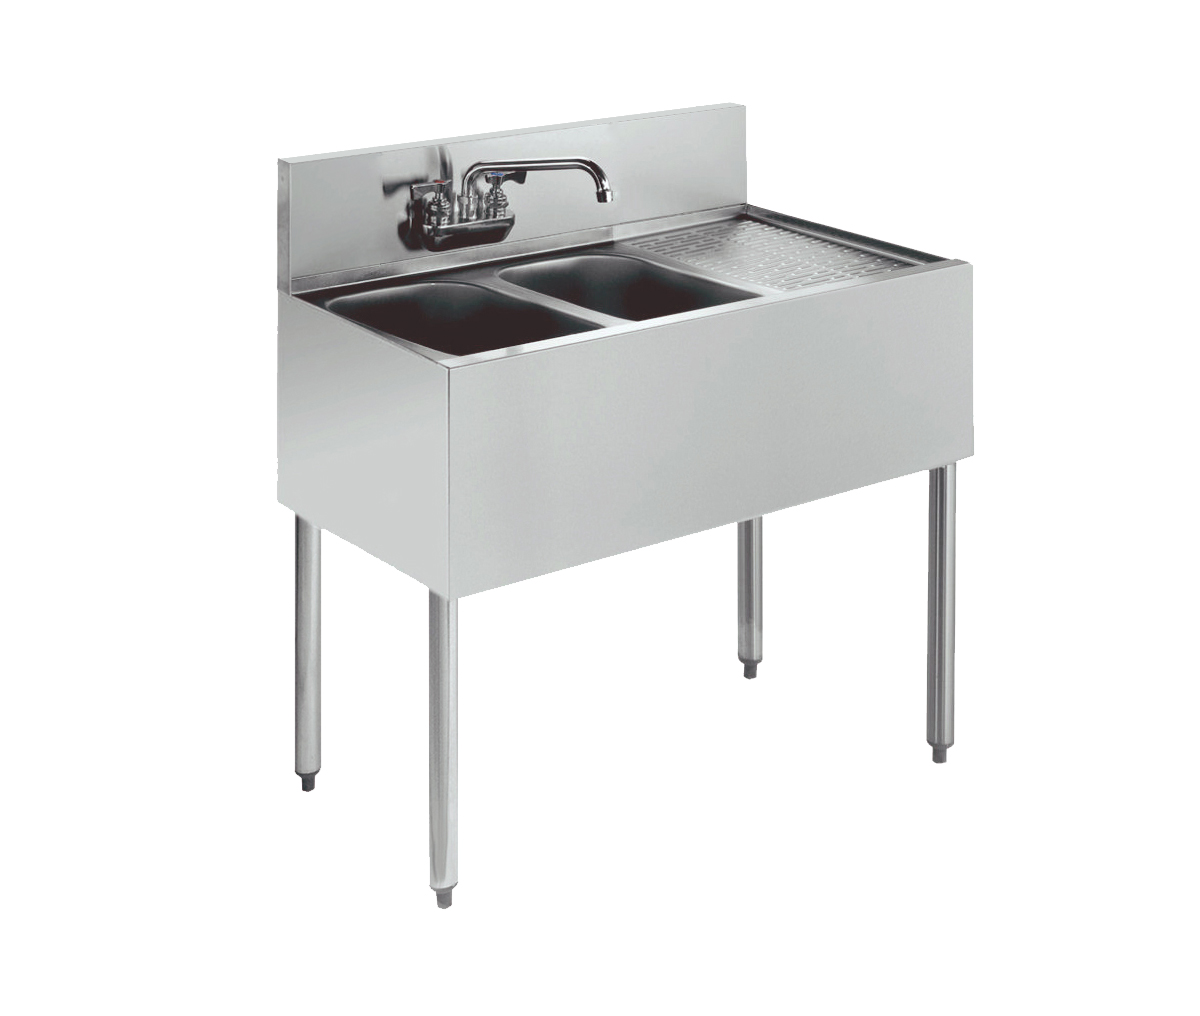 Krowne Metal KR18-42L underbar sink units